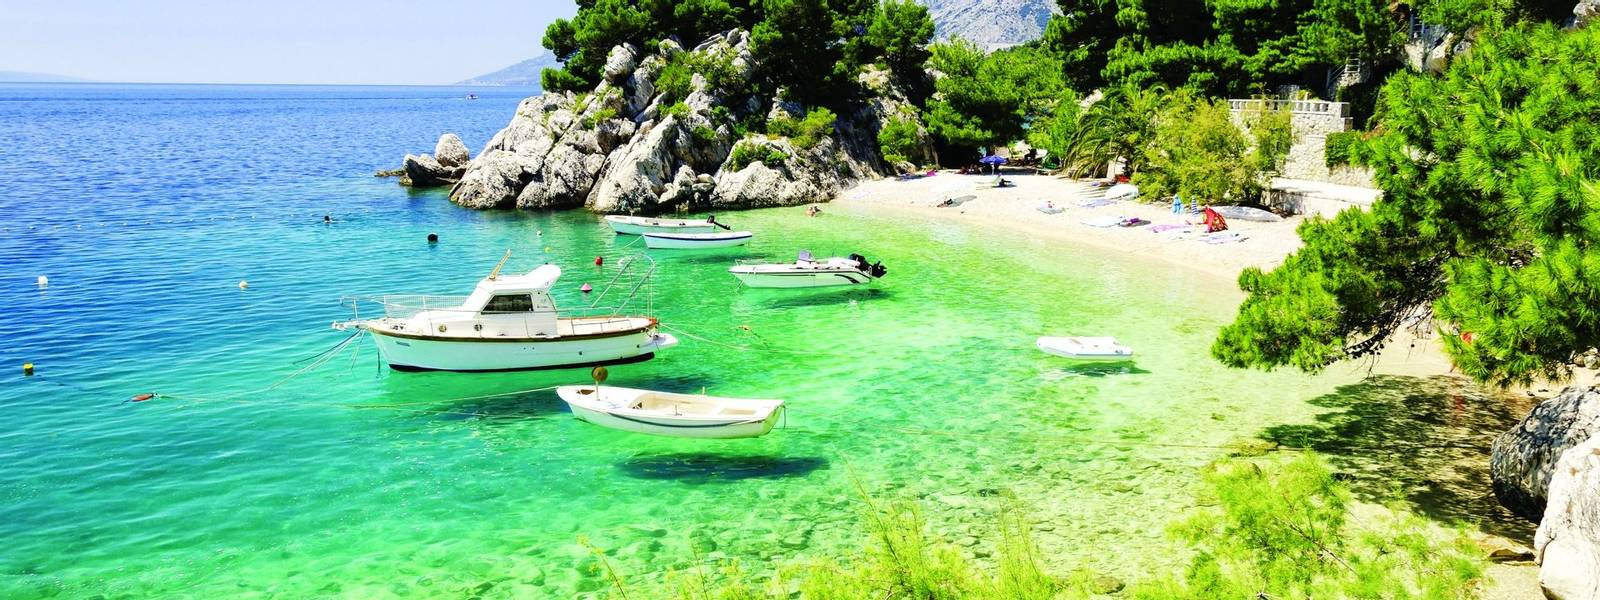 beach in Brela to Makarska Riviera, Dalmatia, Croatia